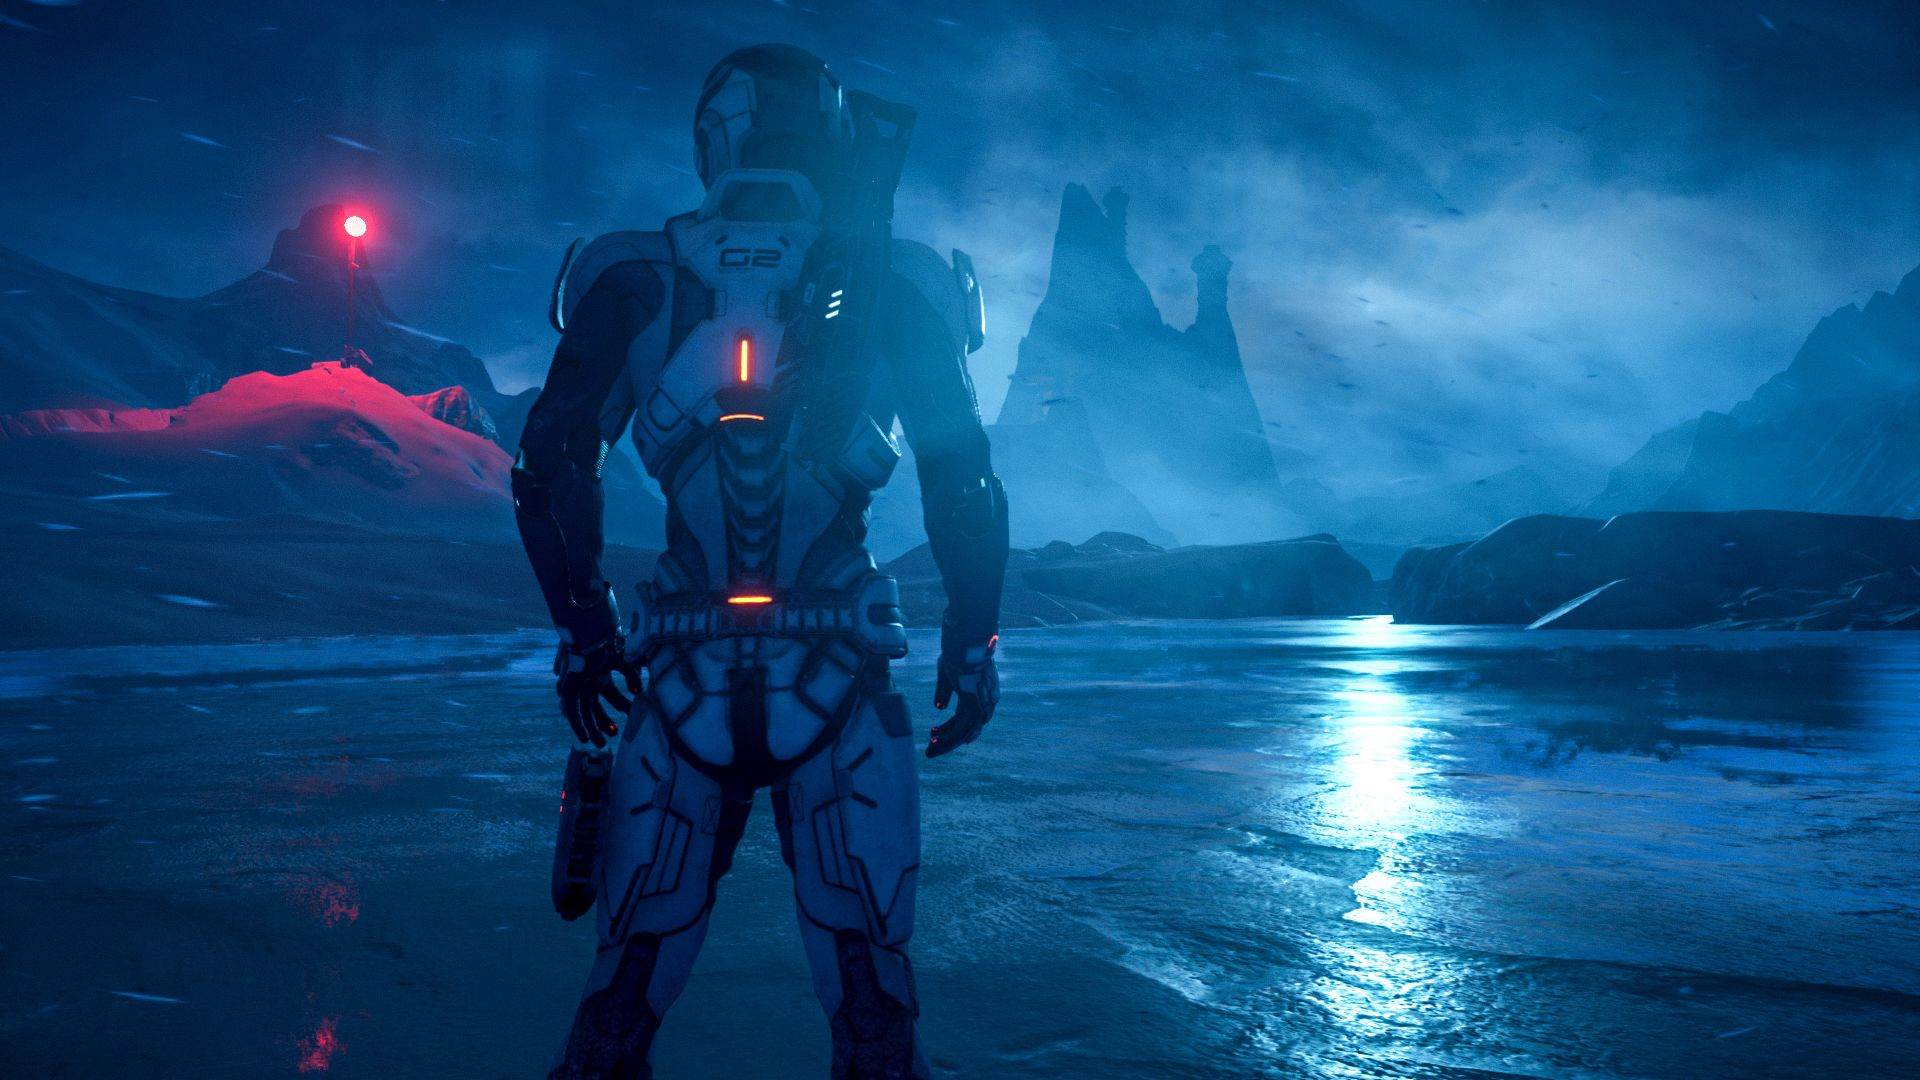 Mass Effect Andromeda Wallpapers Hd 09